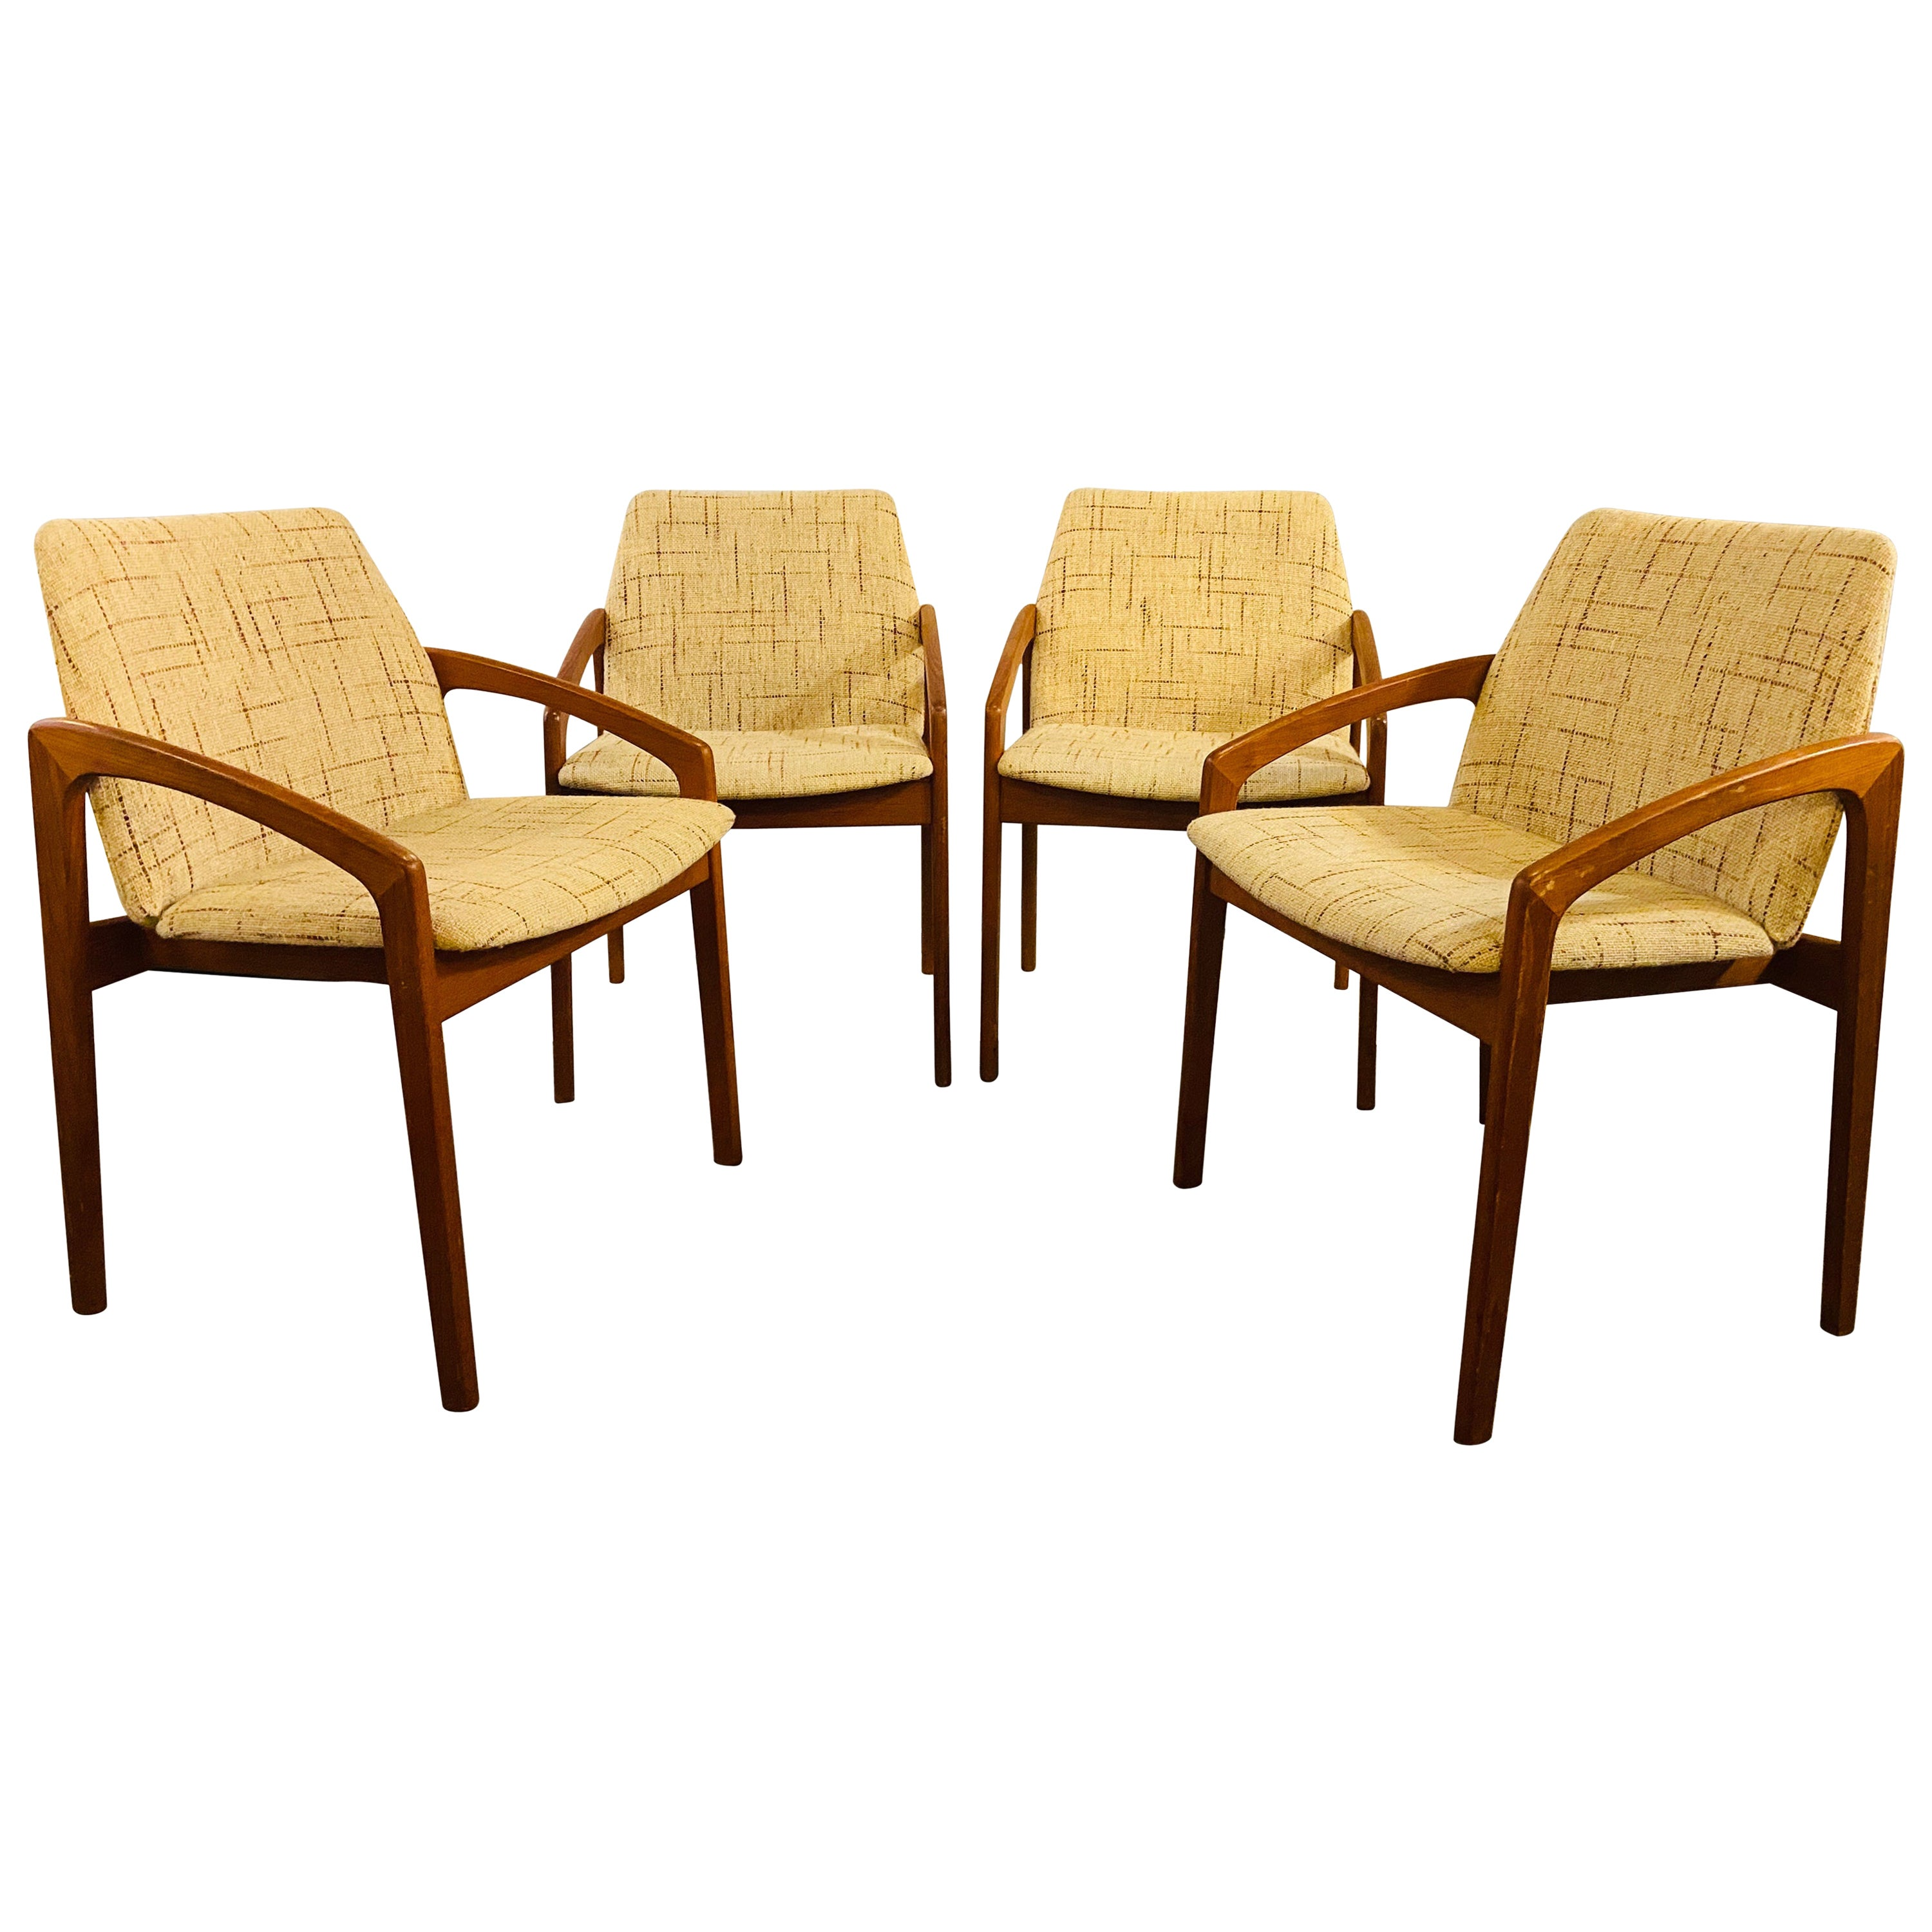 1950s Mid-Century Modern Danish Teak Dining or Side Chairs, Set of Four